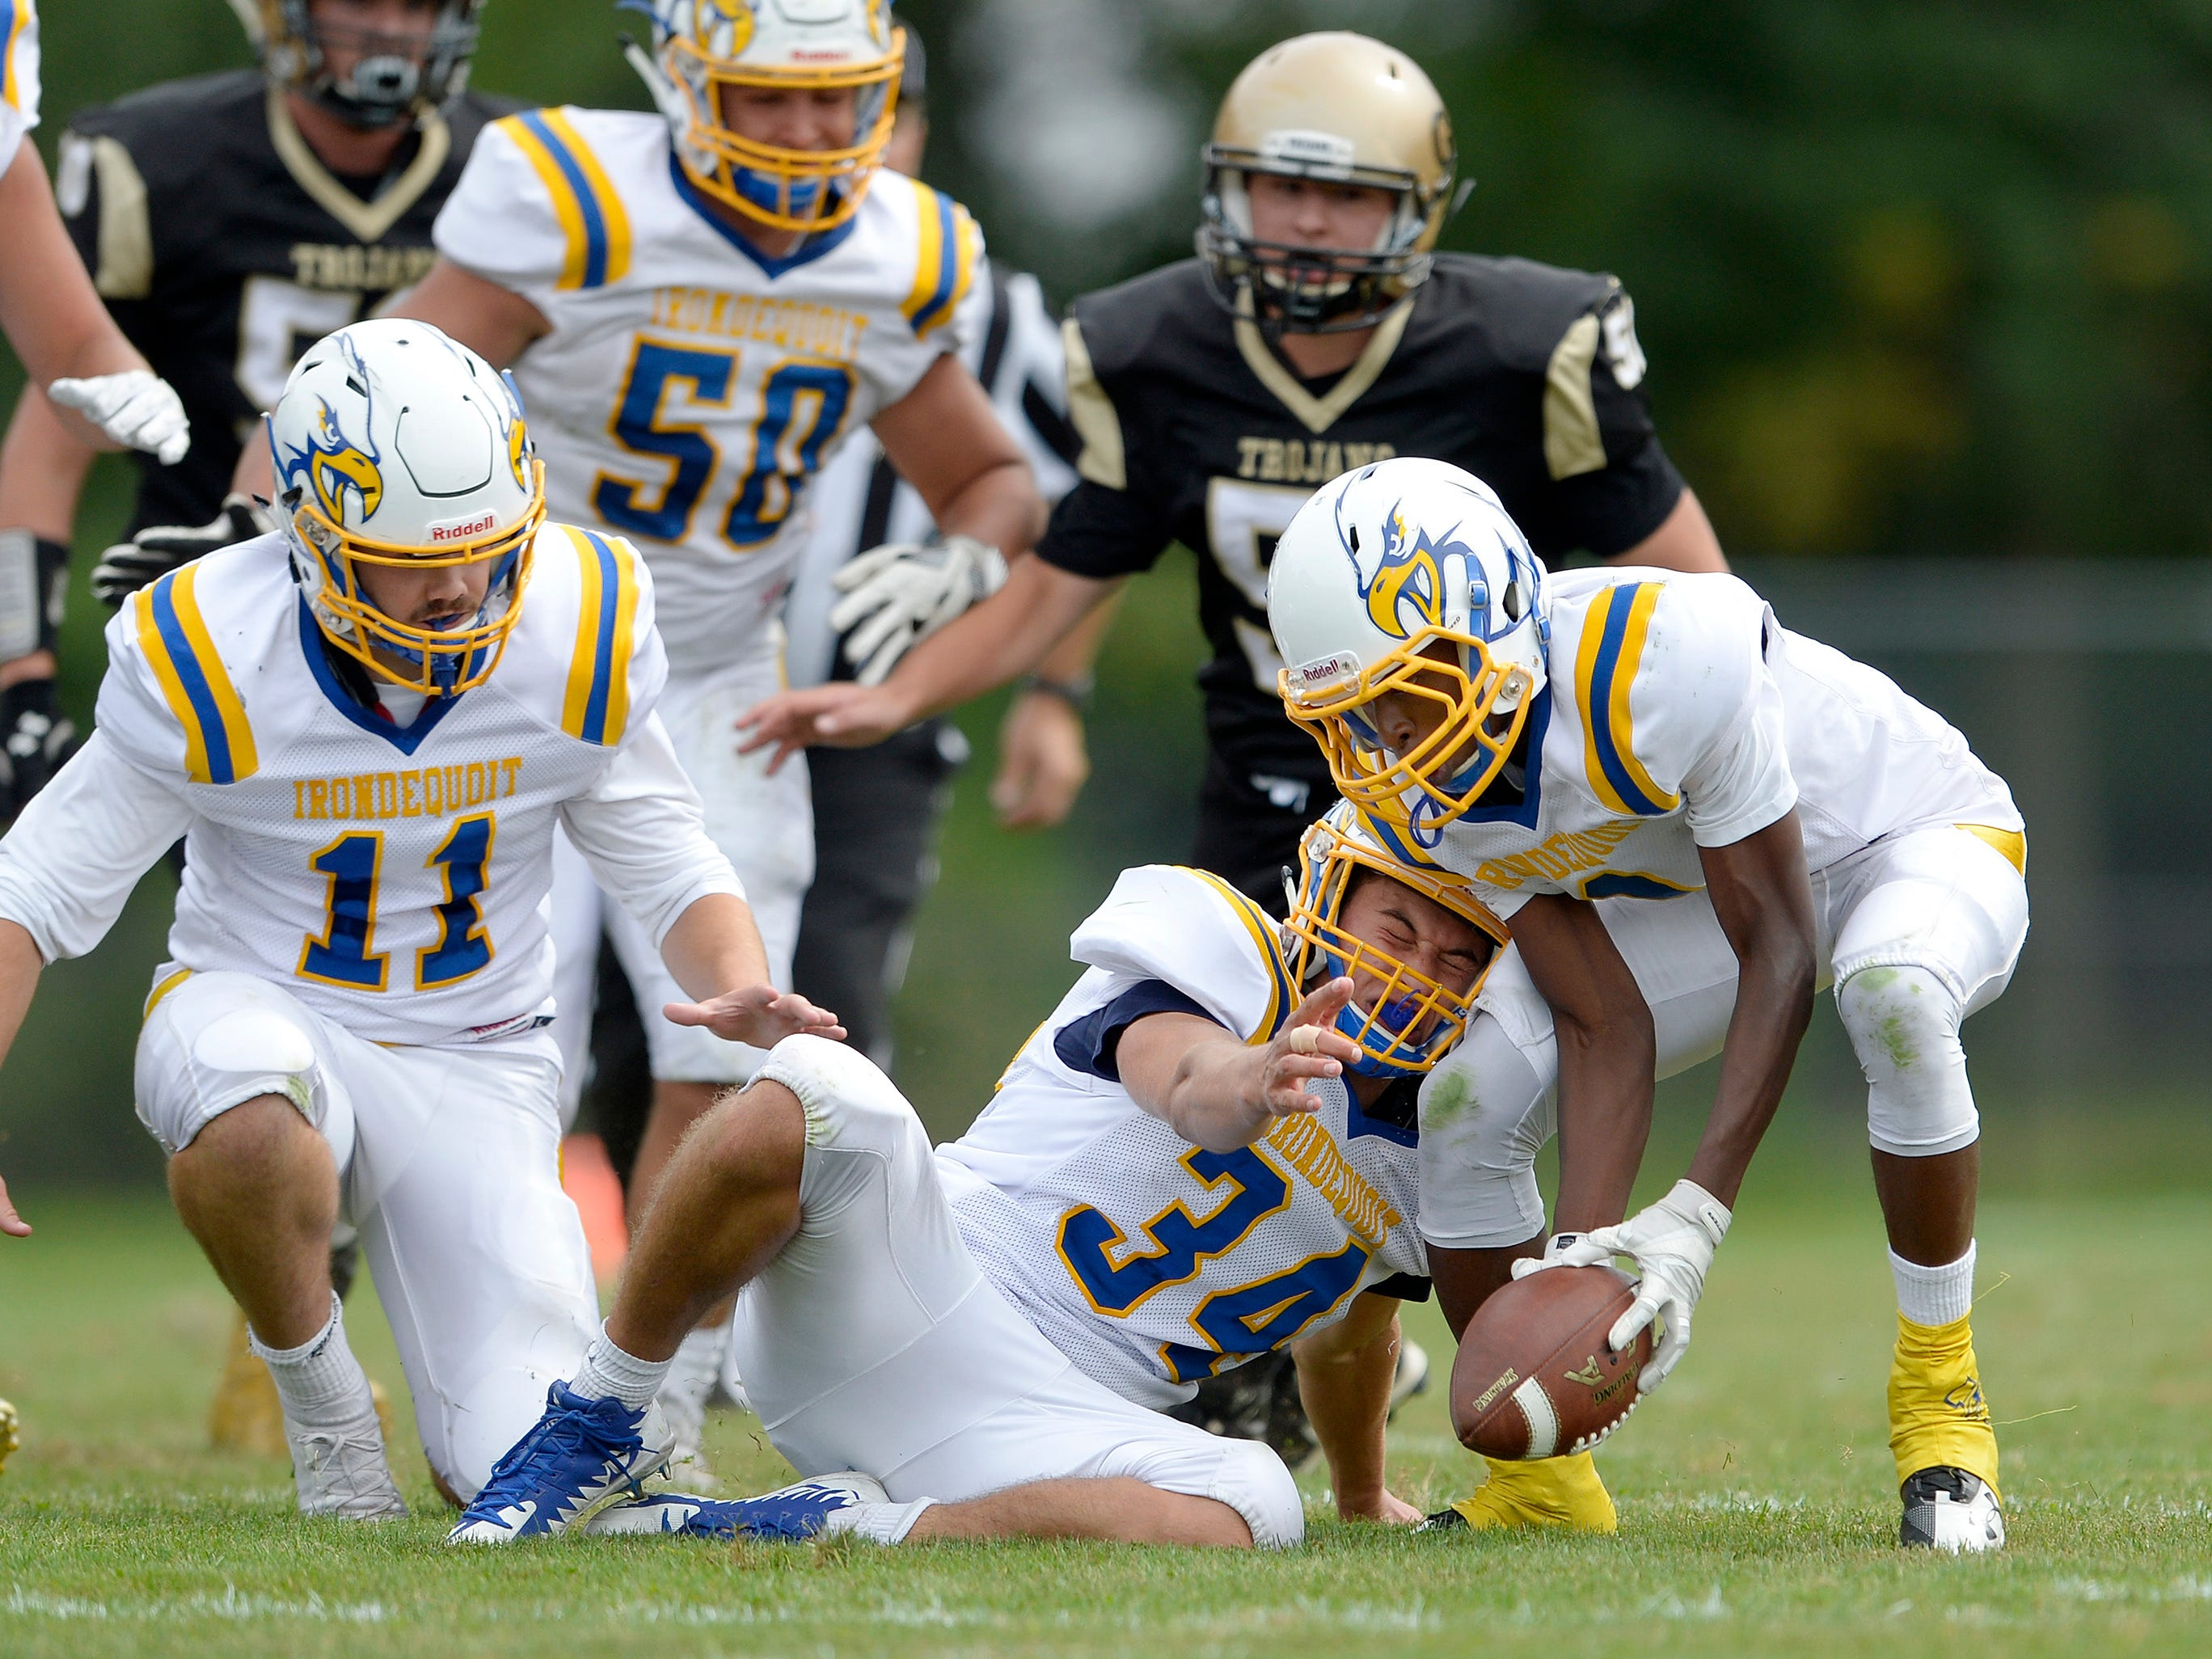 Irondequoit's JaRon Frith, right, recovers a fumble in front of teammates James Clements (34) and Liam Smith (11) on Saturday, Sept. 8, 2018. Irondequoit beat Greece Athena 42-7.